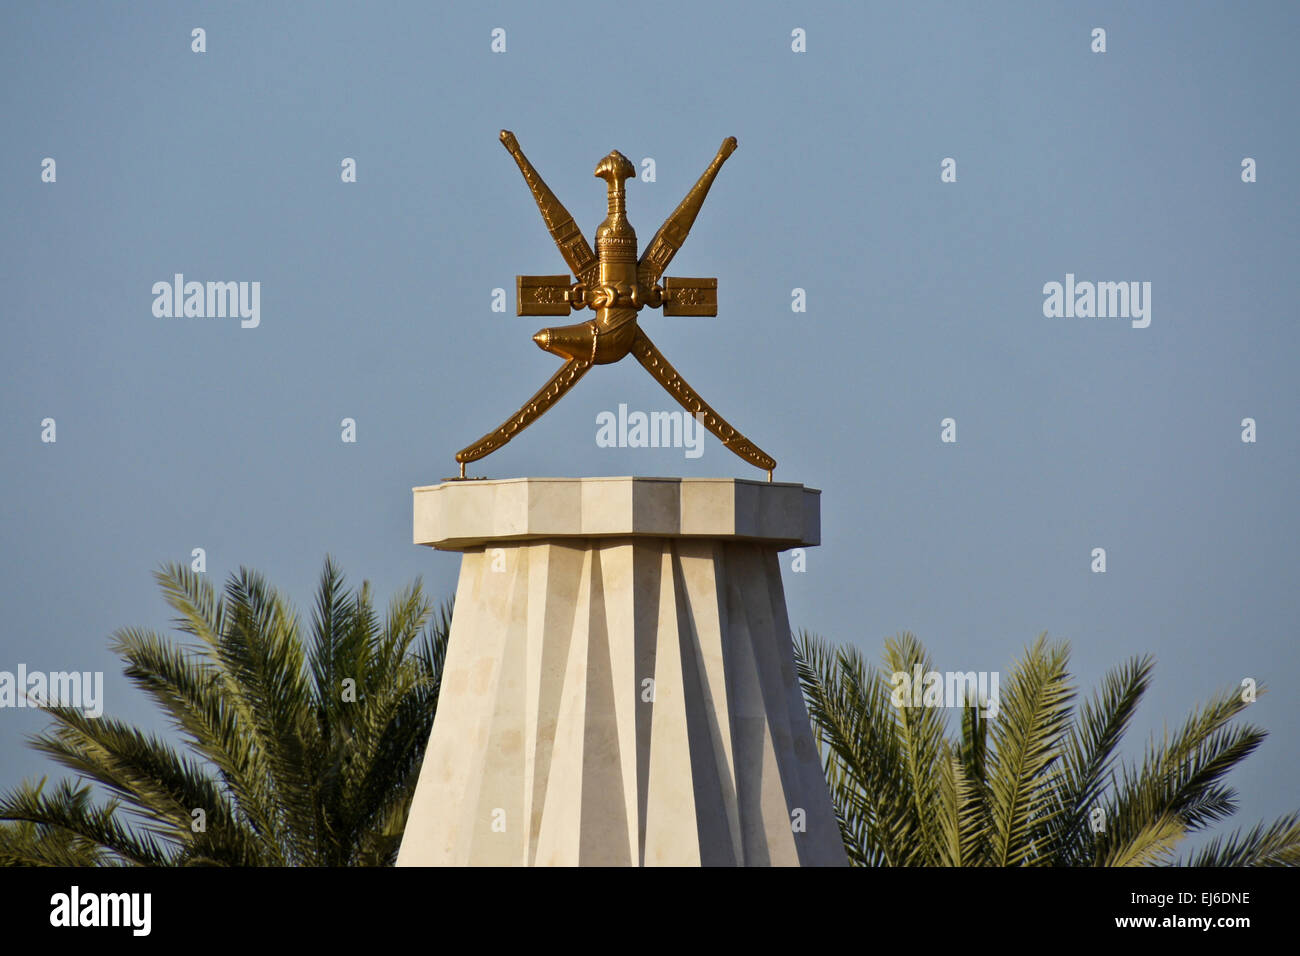 Royal emblem of Oman, two crossed swords and a khanjar (curved dagger) - Stock Image